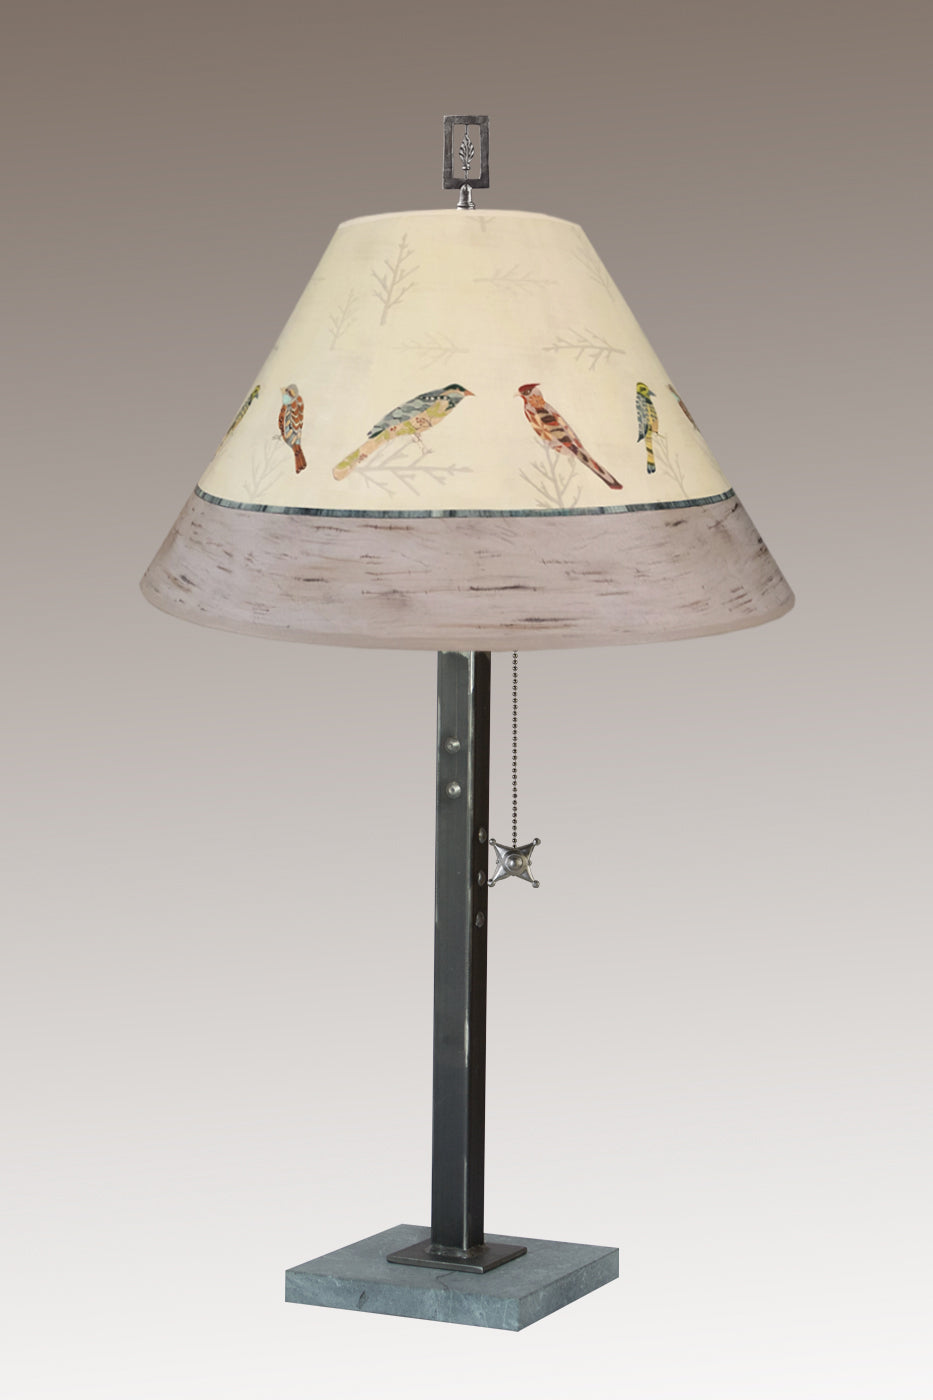 Steel Table Lamp on Italian Marble with Medium Conical Shade in Bird Friends